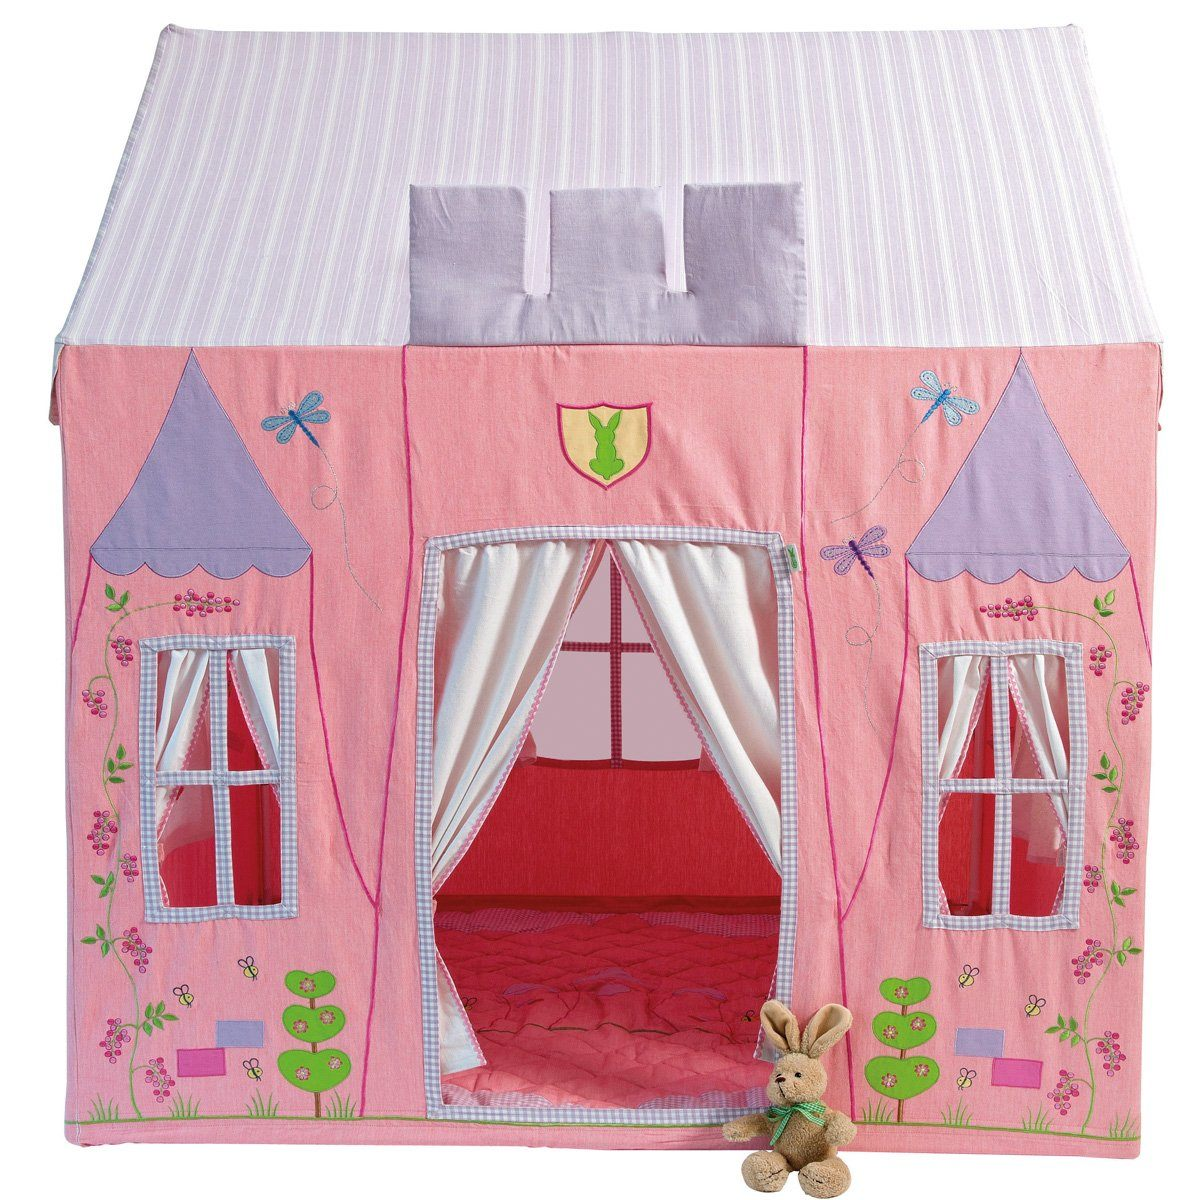 Playhouse & Wigwam & Tents - Prince Castle Playhouse